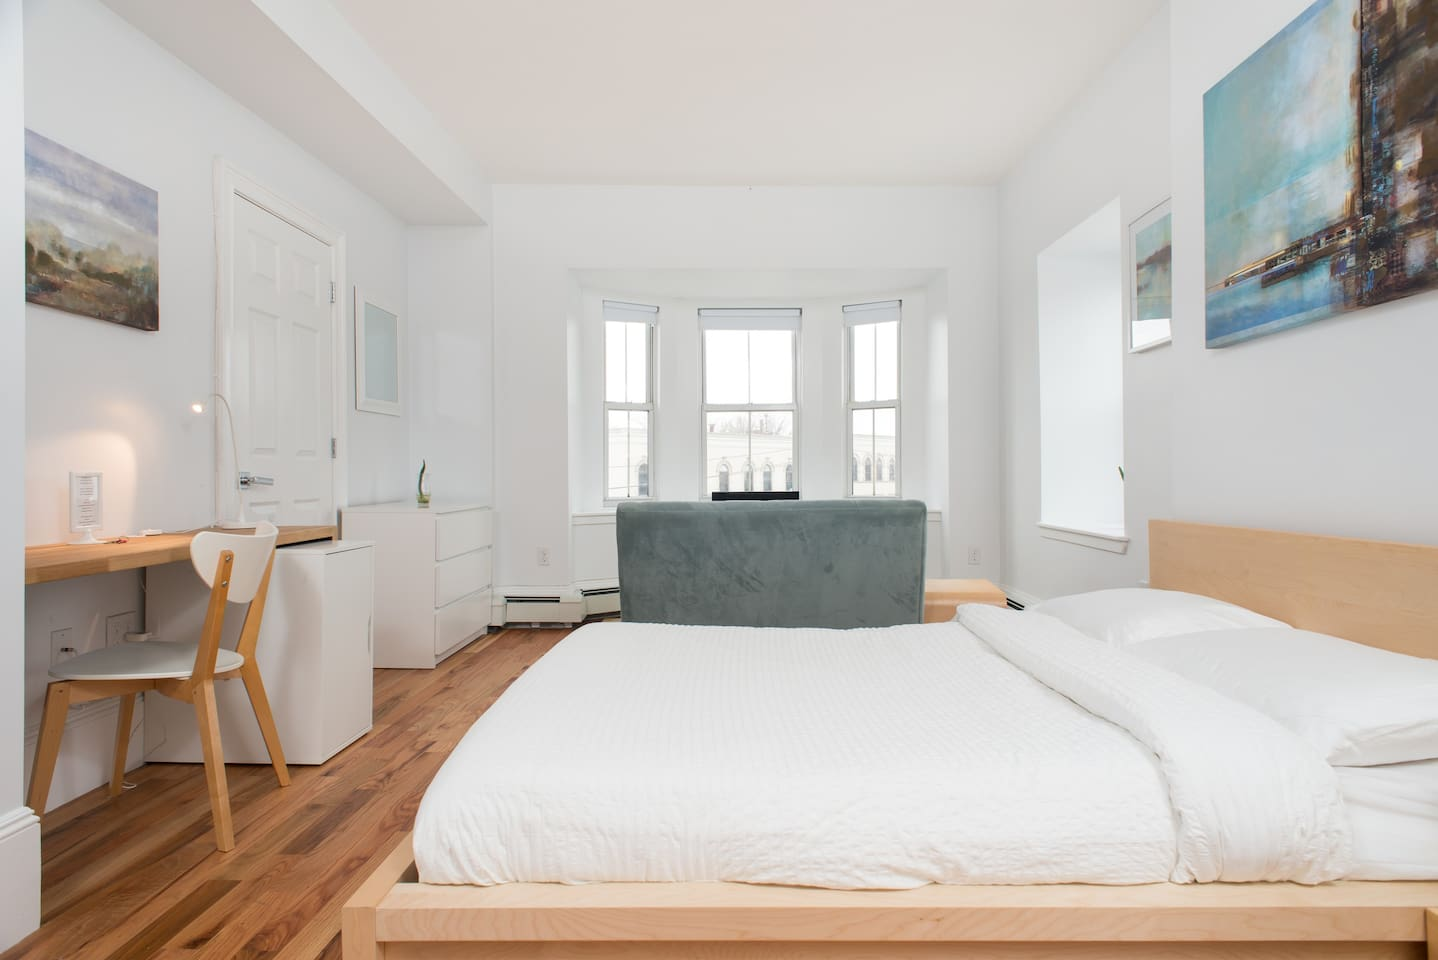 Alvah Kittredge Brownstone: Full/Double sized bed, high thread count sheets, nice and soft. Mattress/Pillows protected with cover